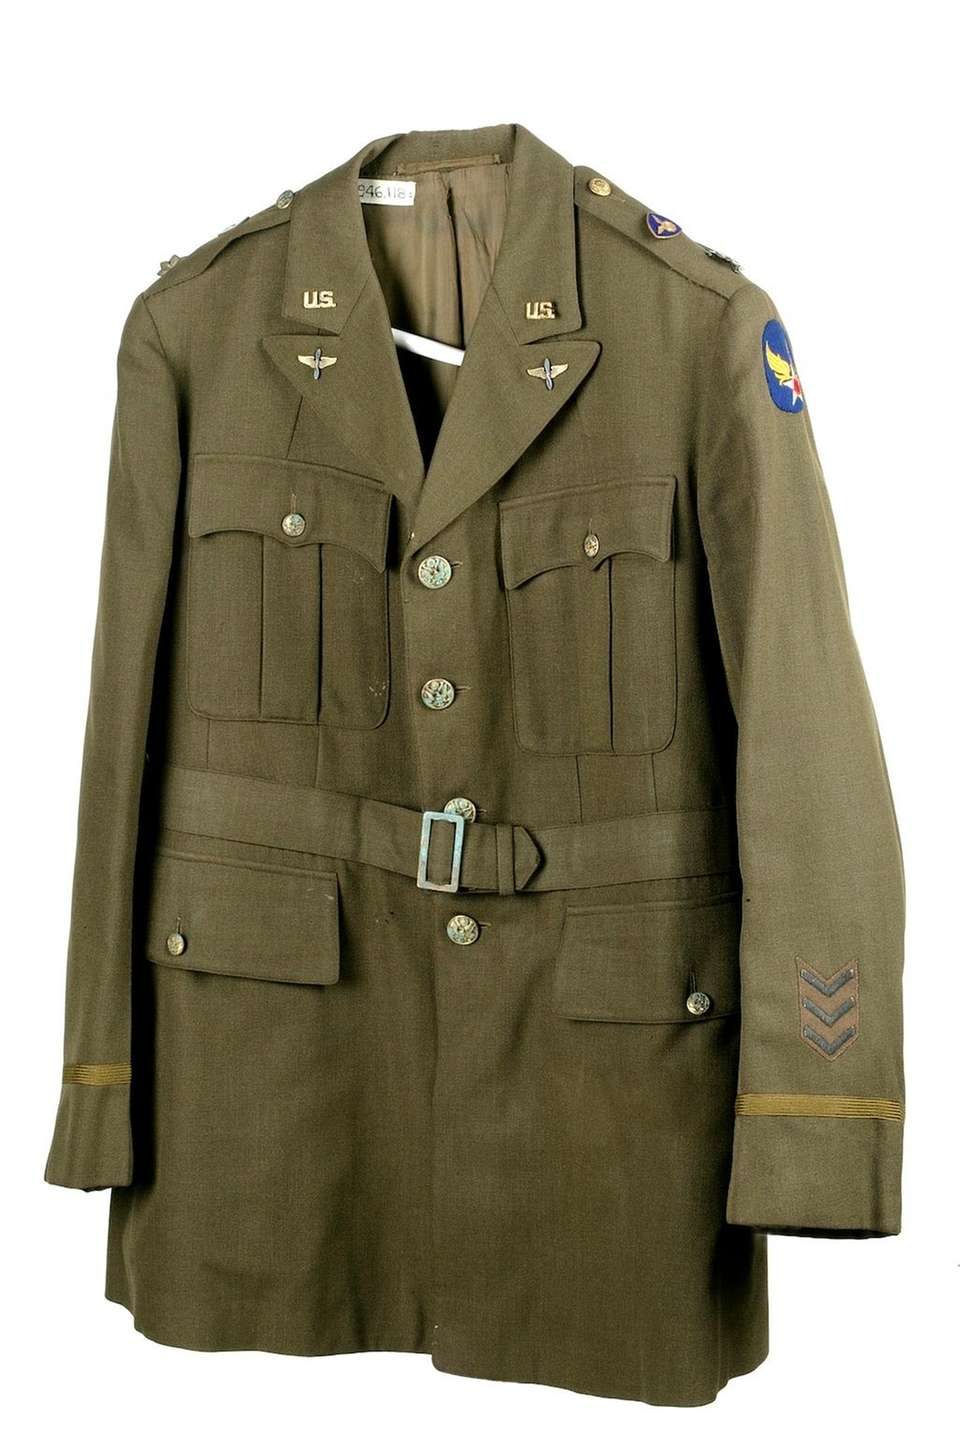 This wool officer's coat produced by Brooks Brothers